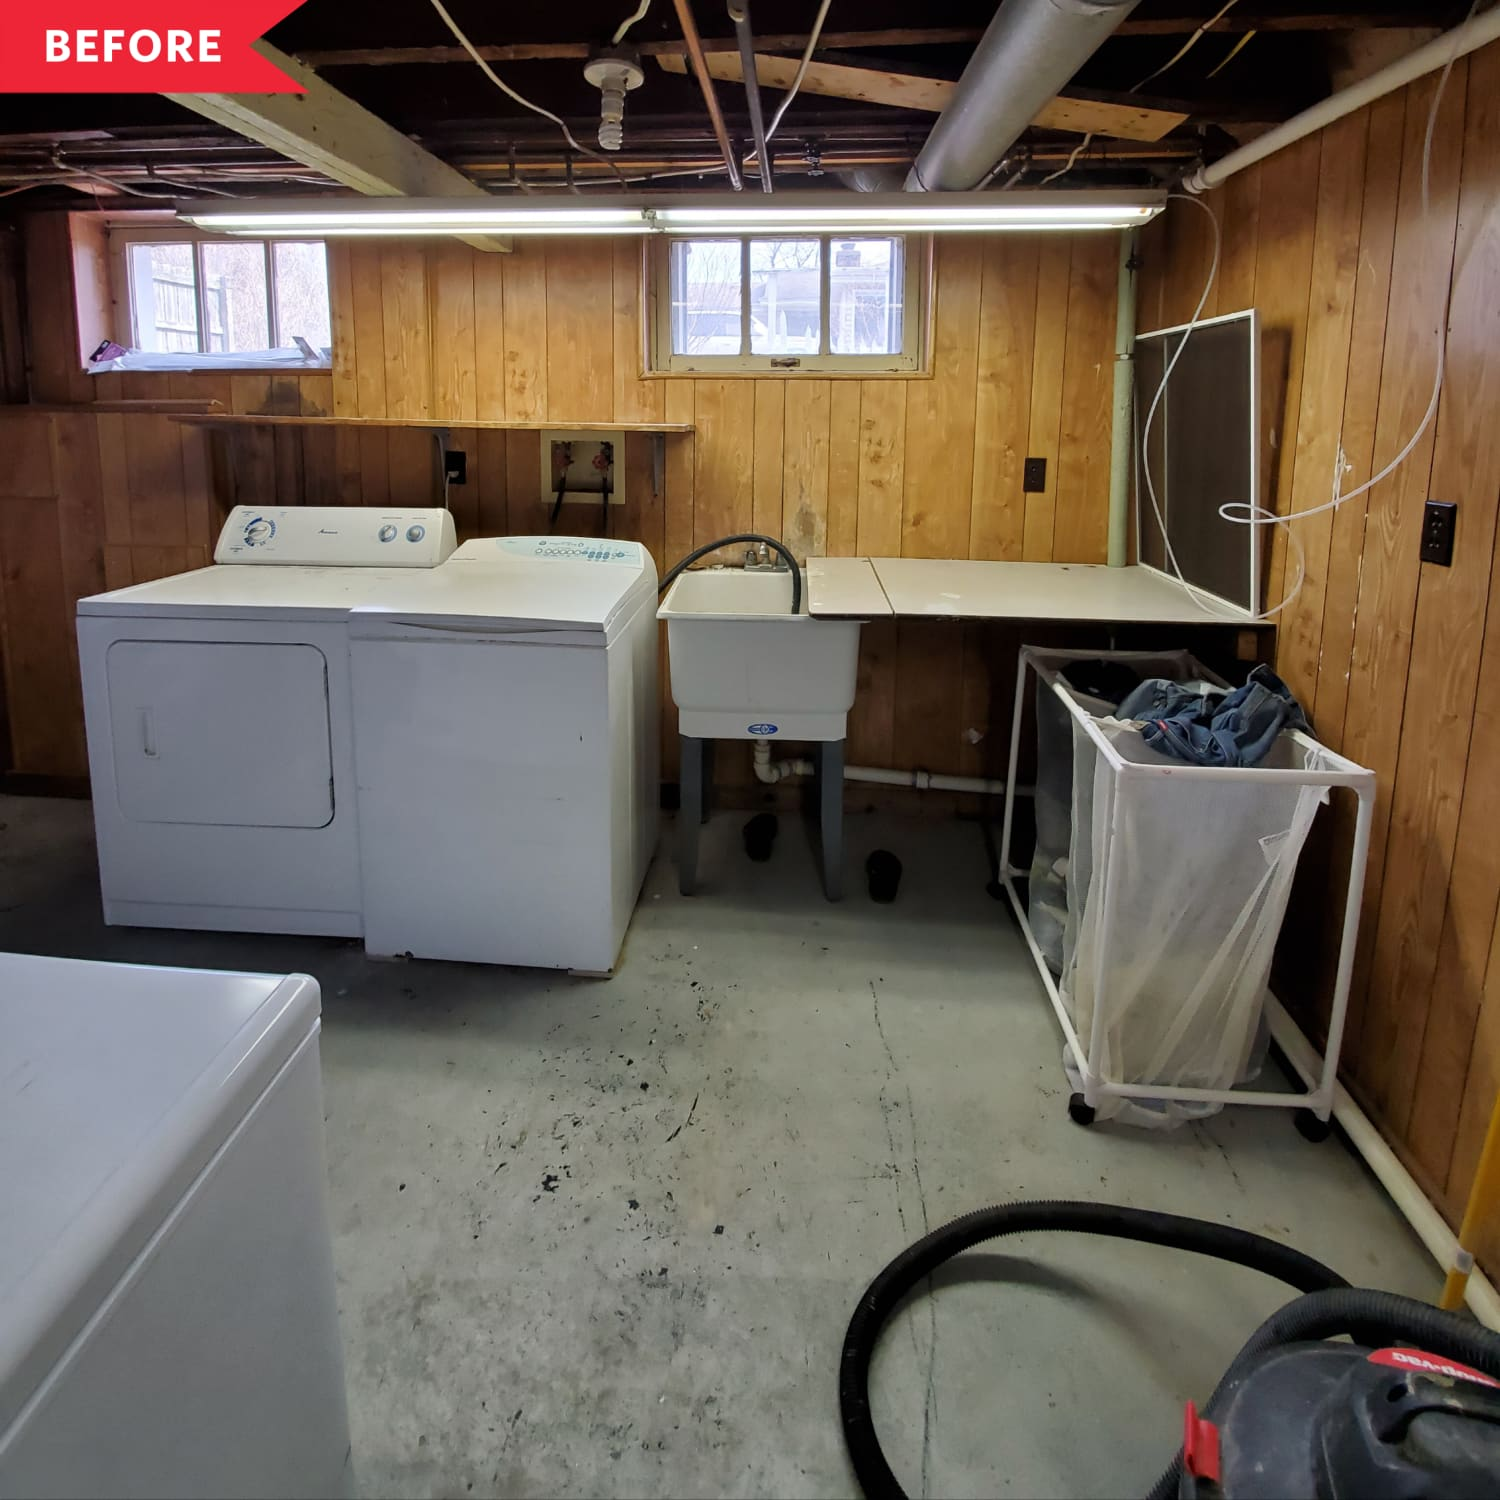 Before and After: A Cheery Laundry Room Makeover for Just $25